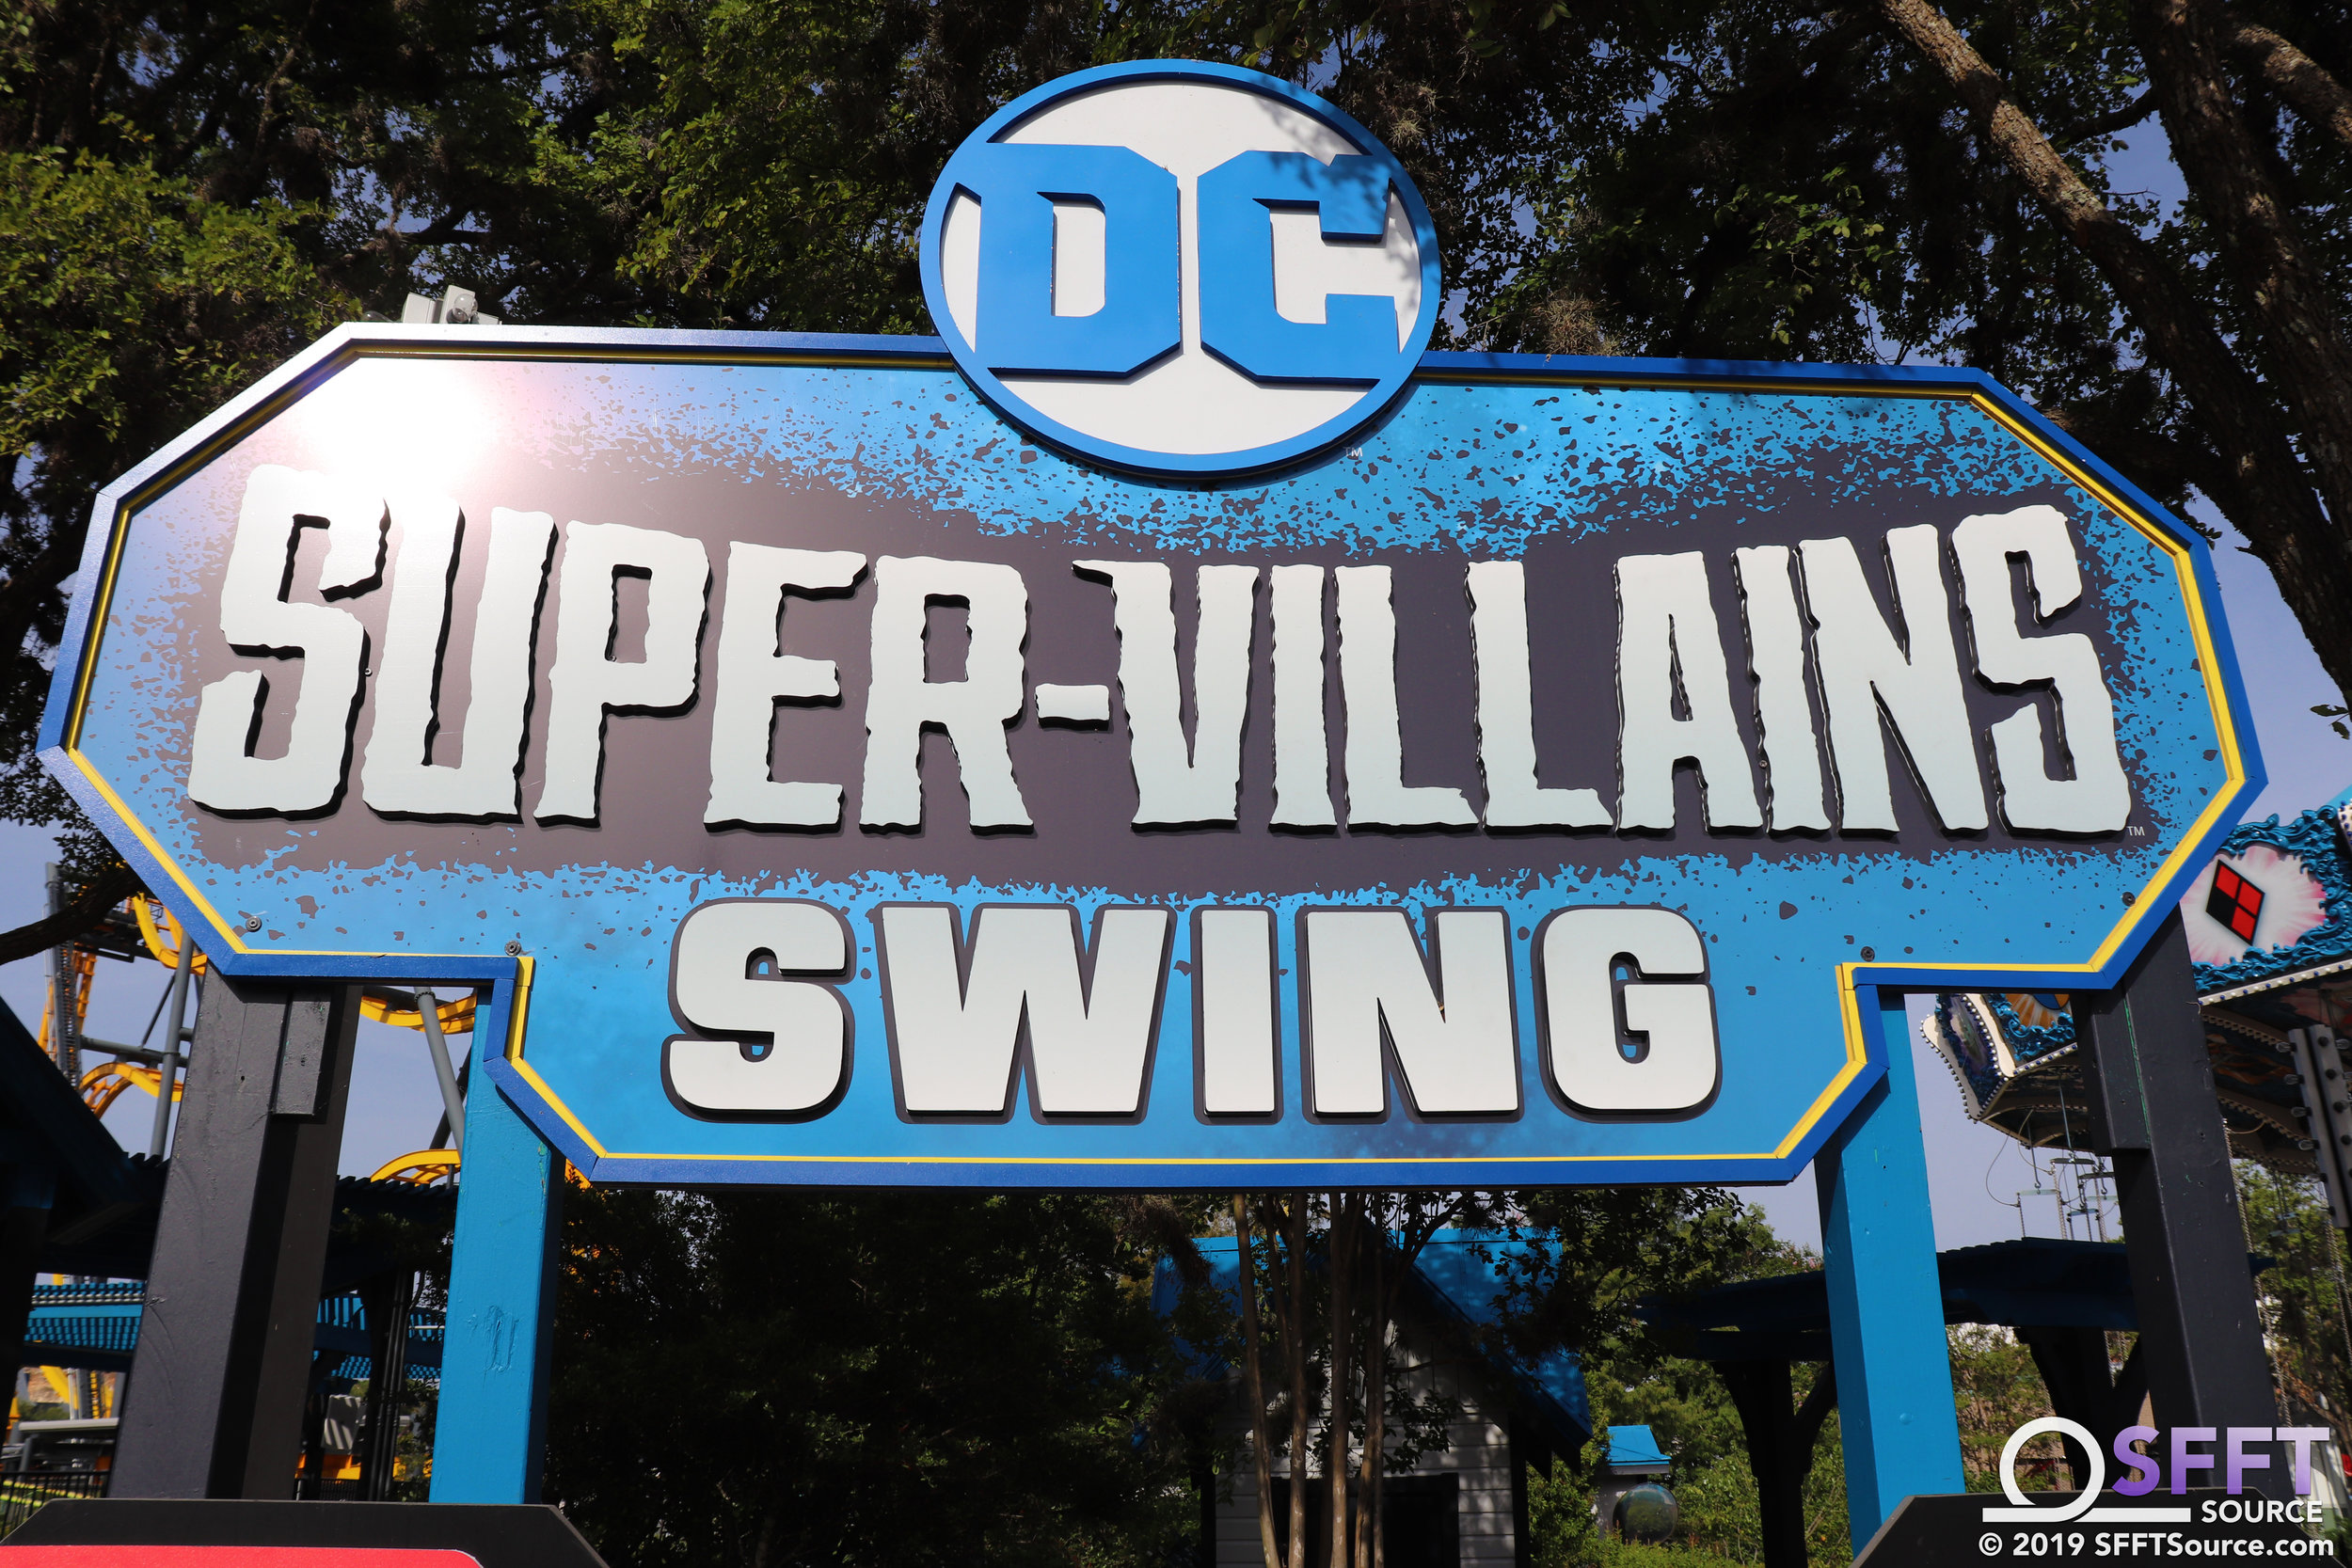 The main entrance to DC Super-Villains Swing.